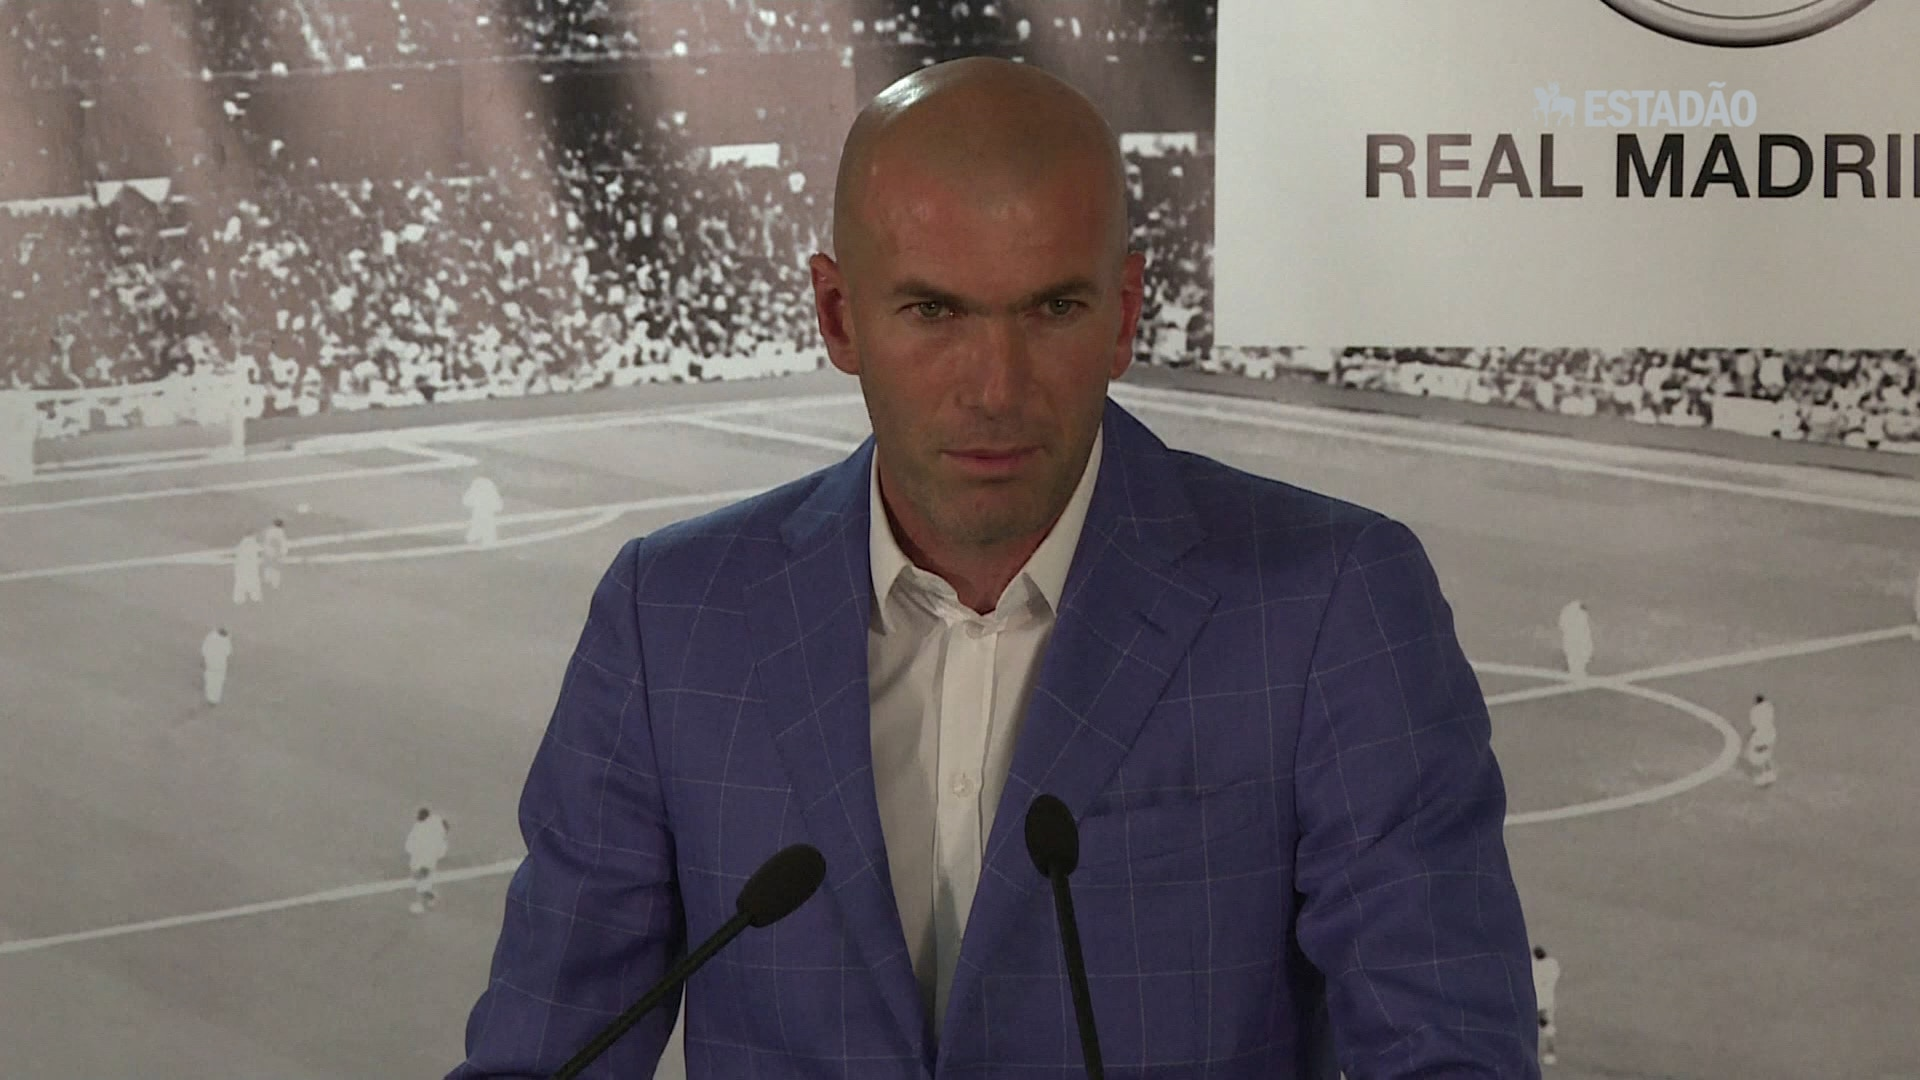 Zidane assume Real Madrid